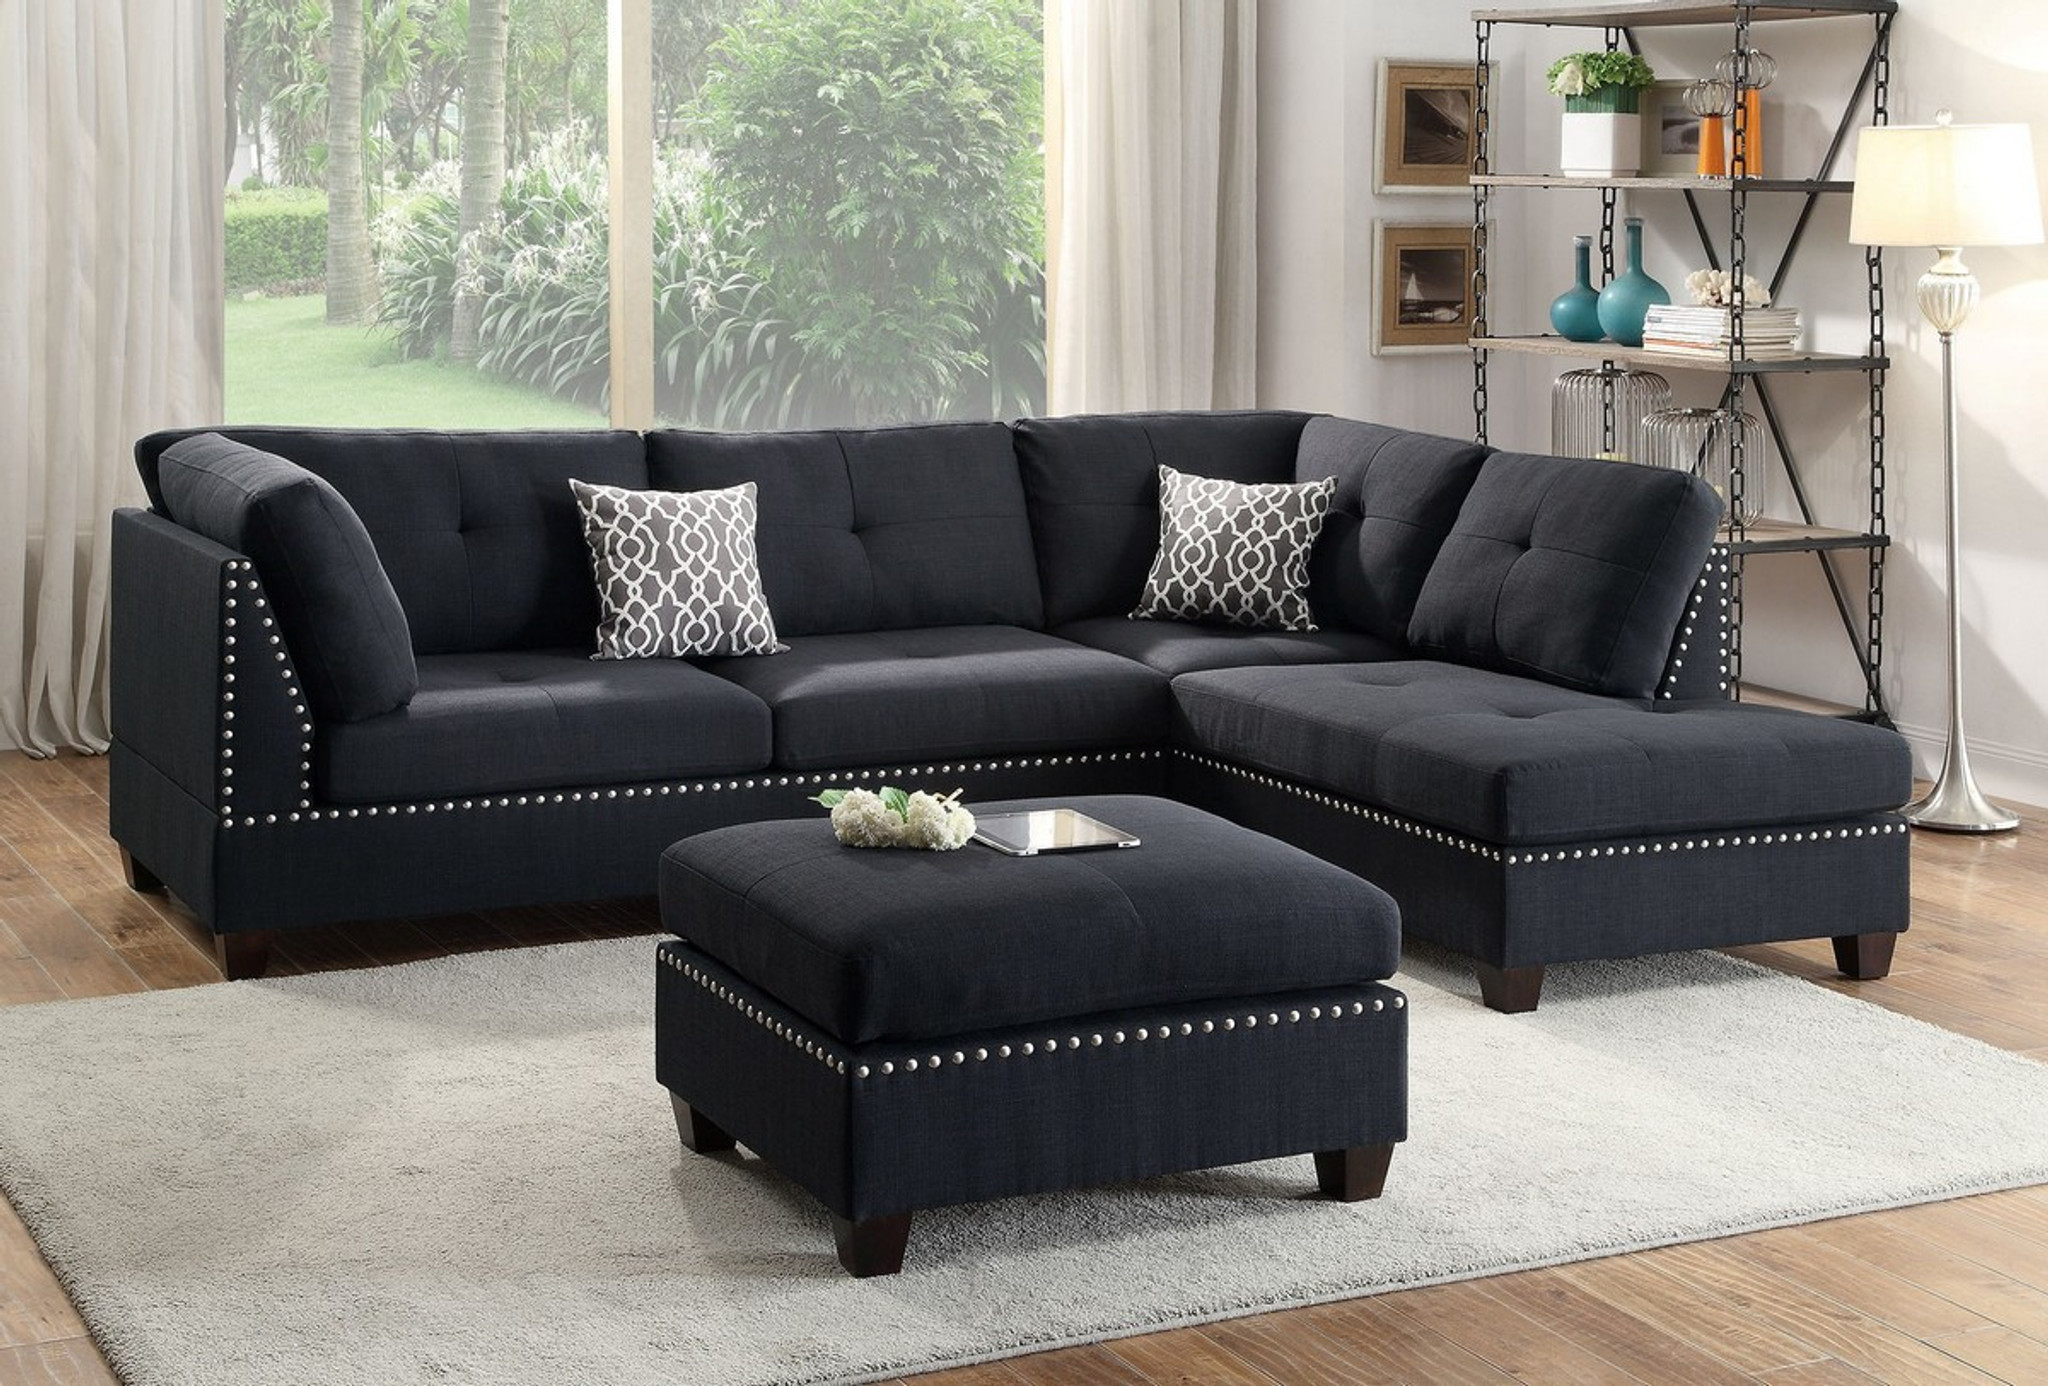 Wondrous Laney Sectional With Ottoman In Black Uwap Interior Chair Design Uwaporg